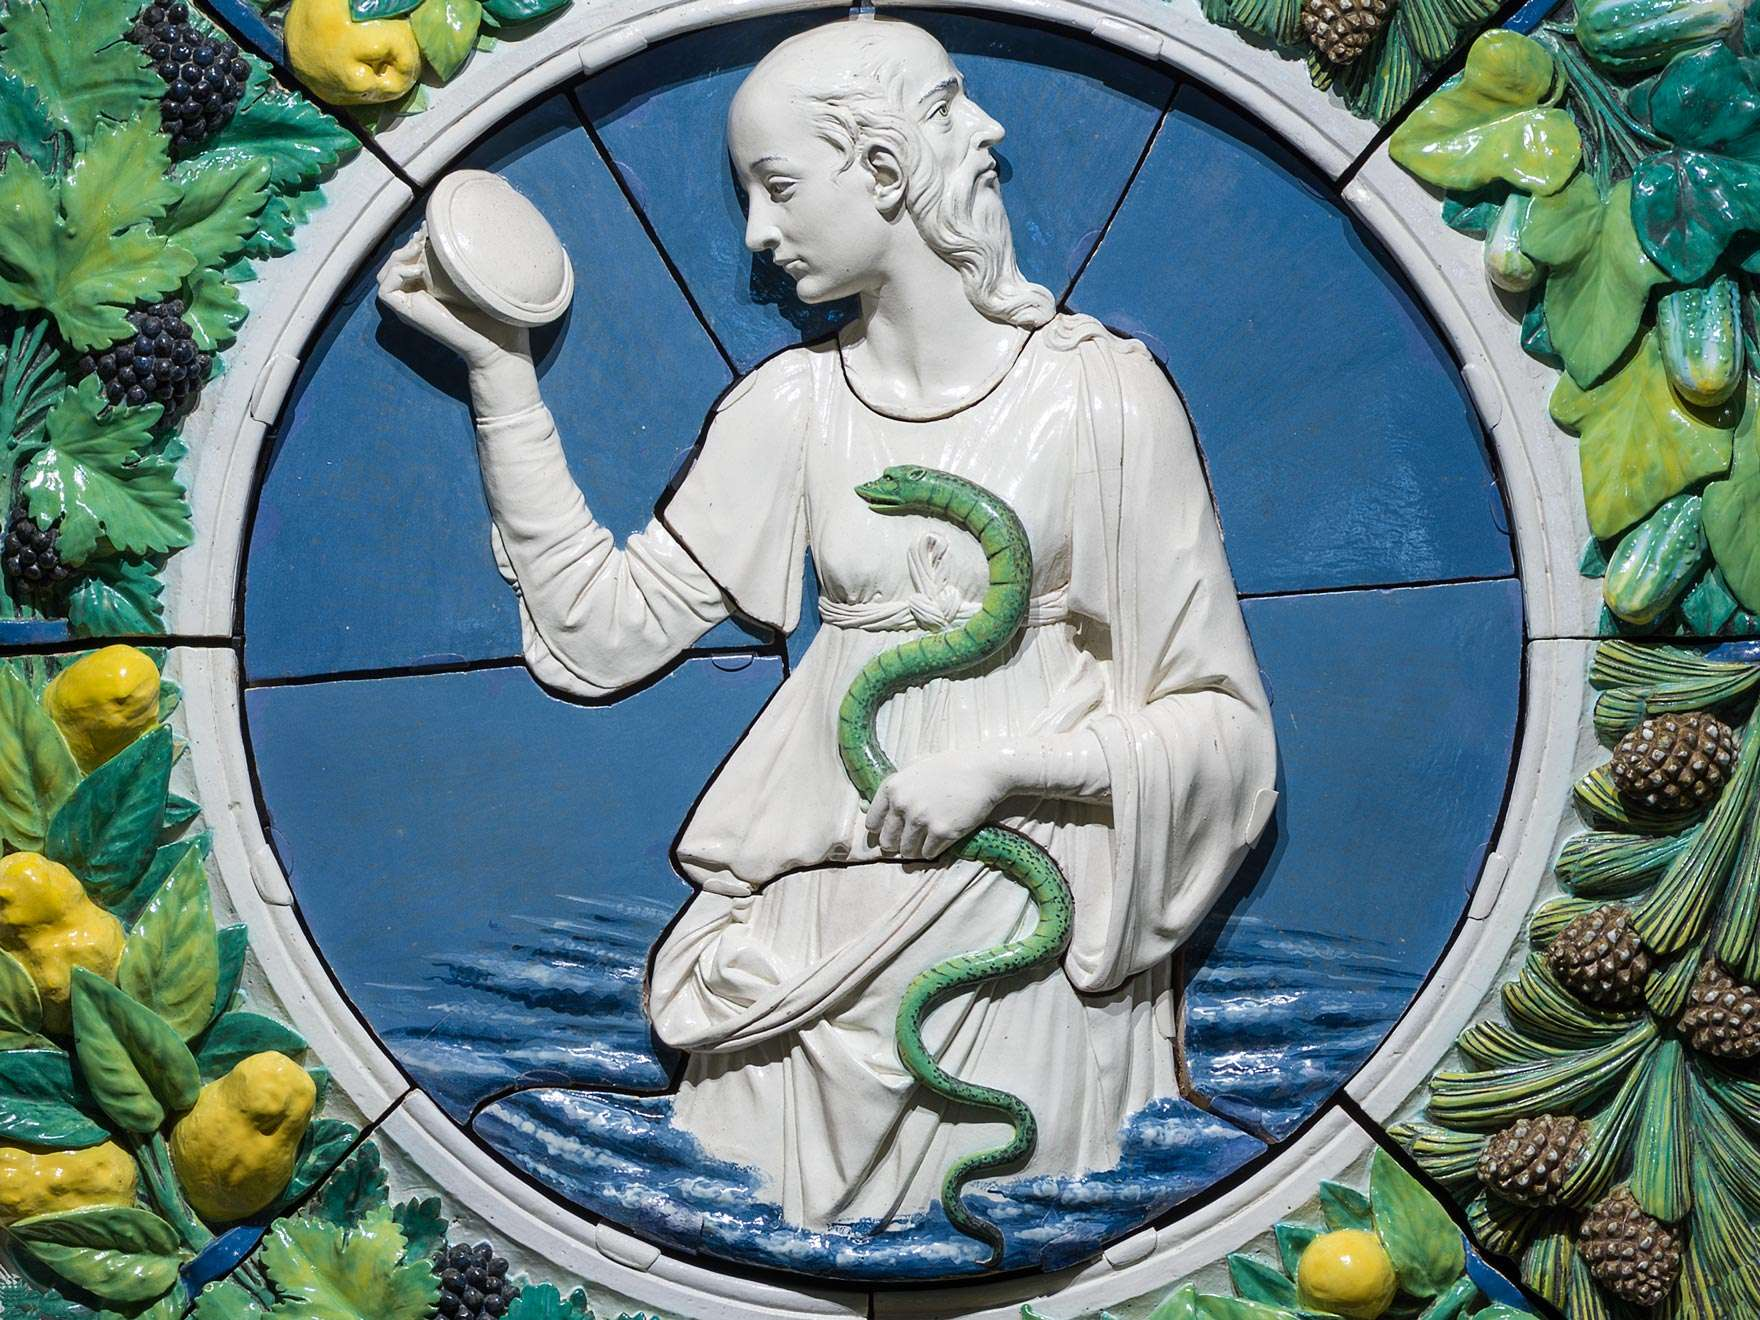 Detail of wreath with two-headed figure and serpent